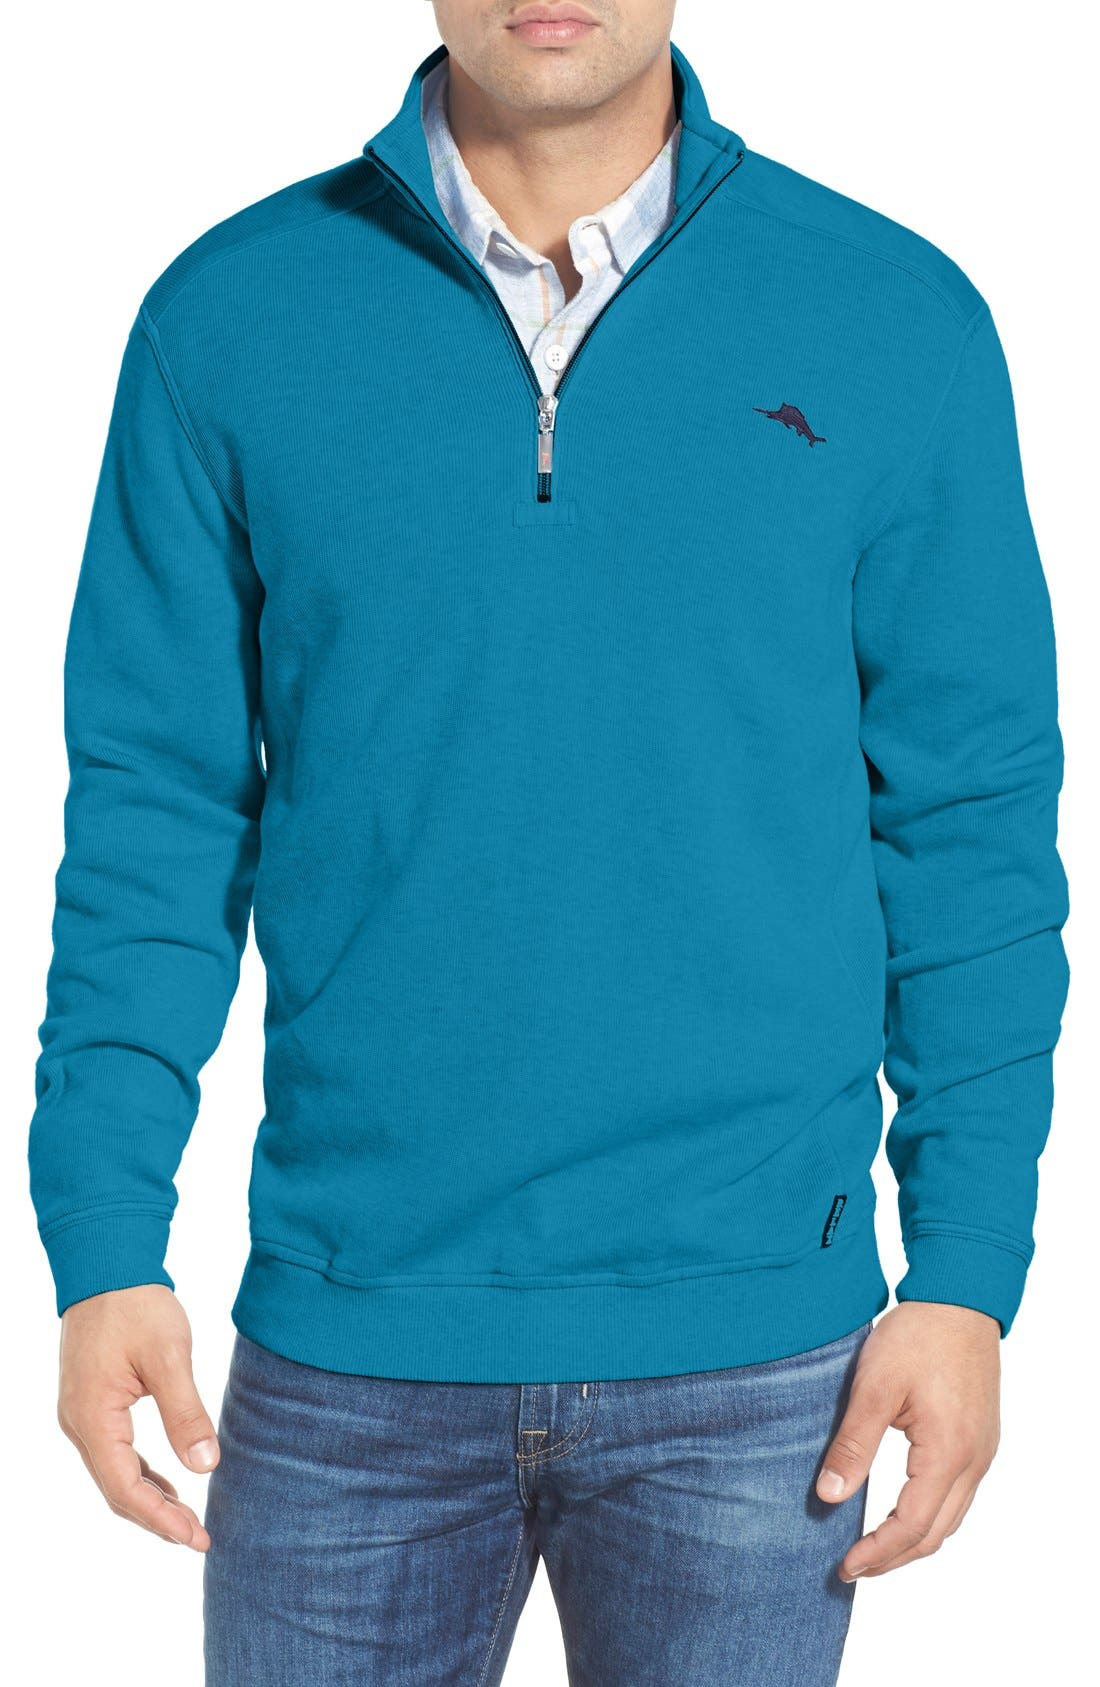 Main Image - Tommy Bahama 'Antigua' Half Zip Pullover (Big & Tall)